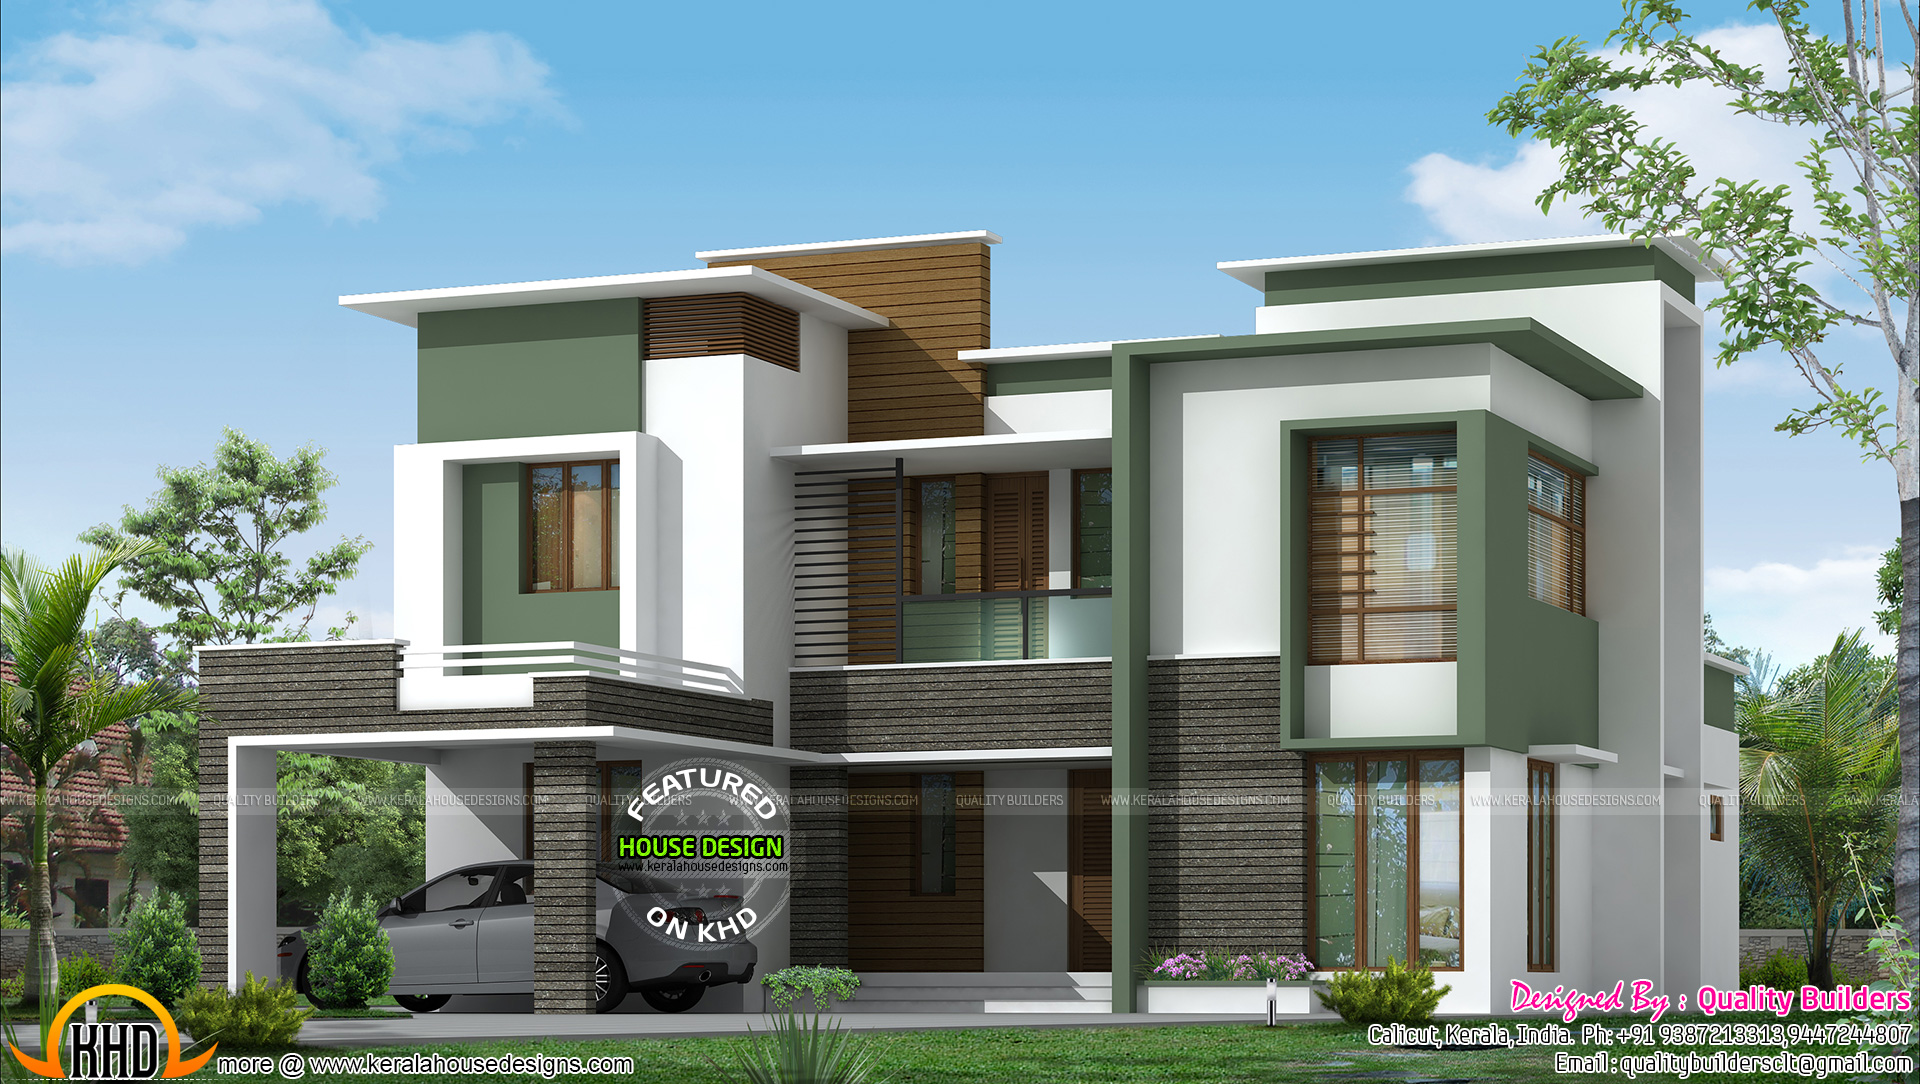 2806 sq ft flat roof contemporary   kerala home design and floor plans